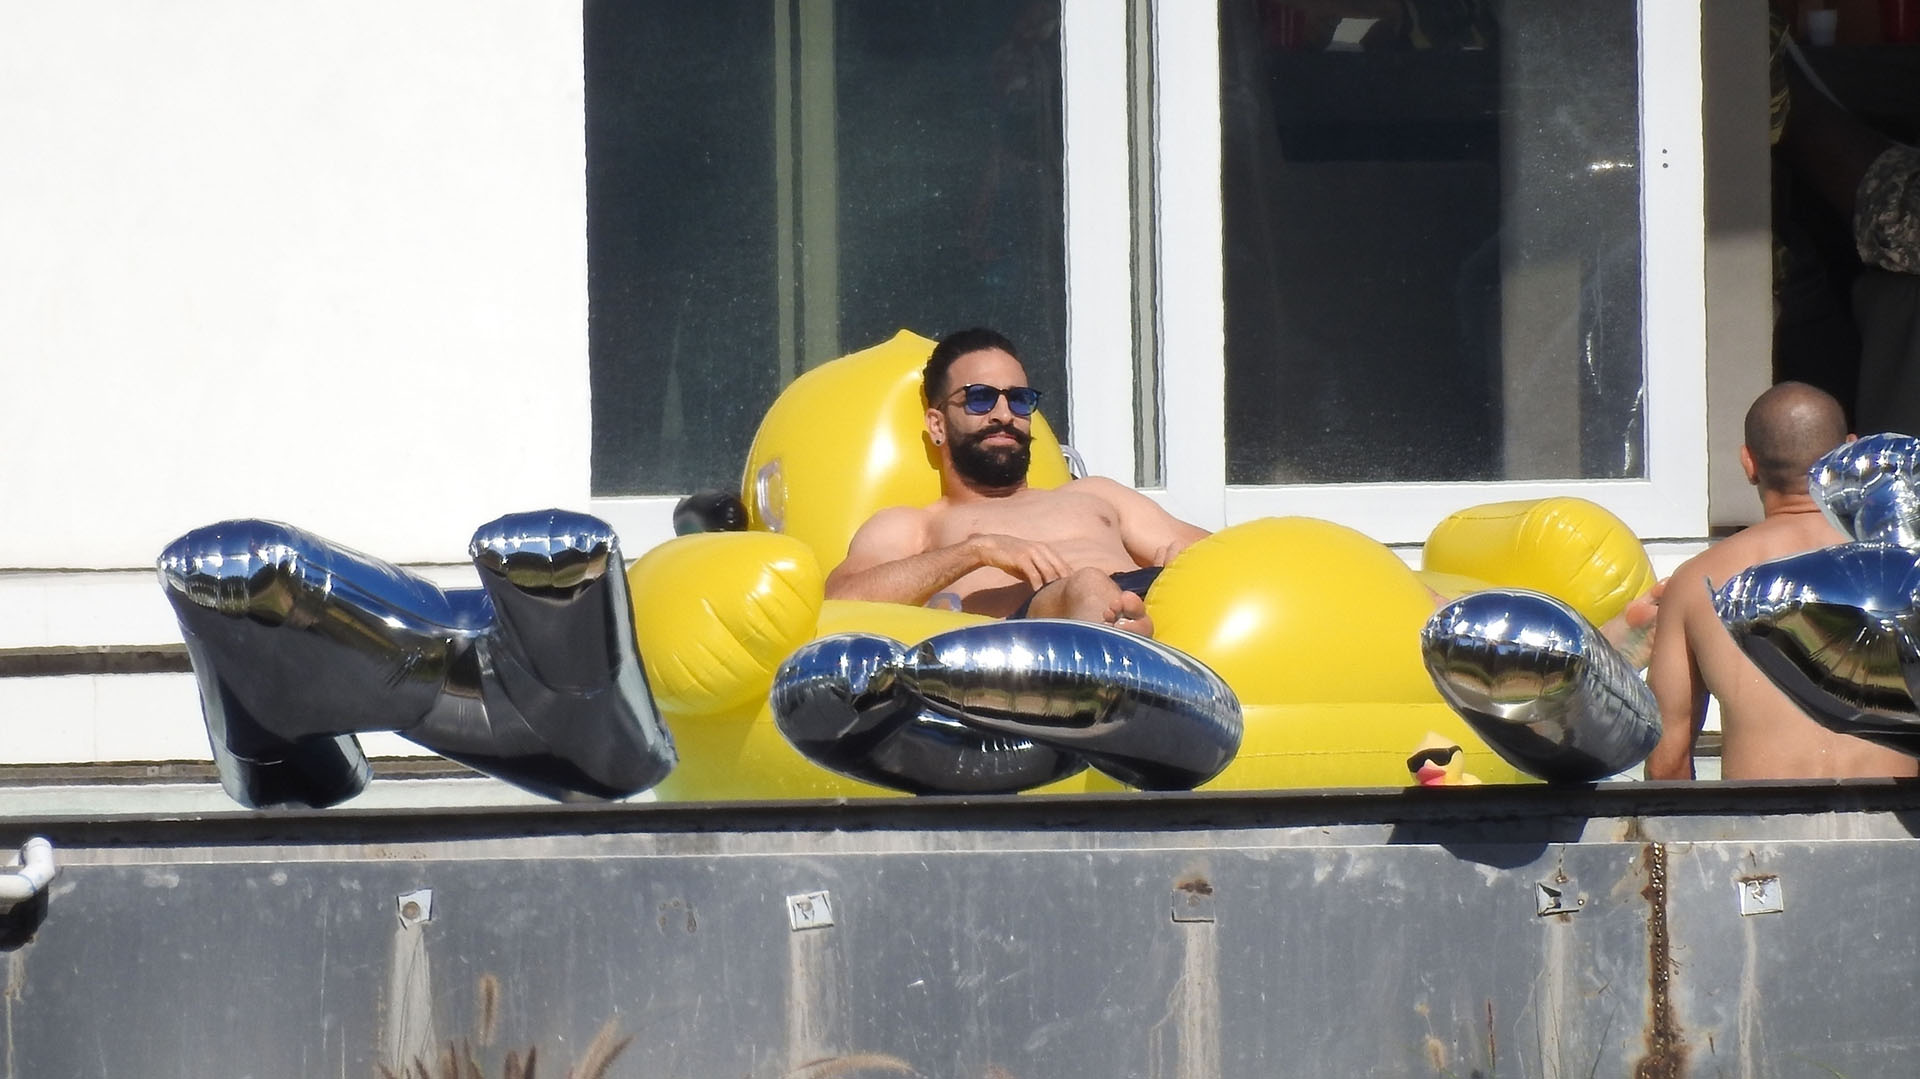 Adil Rami toma sol en a piscina (Photo © 2018 Backgrid/The Grosby Group)